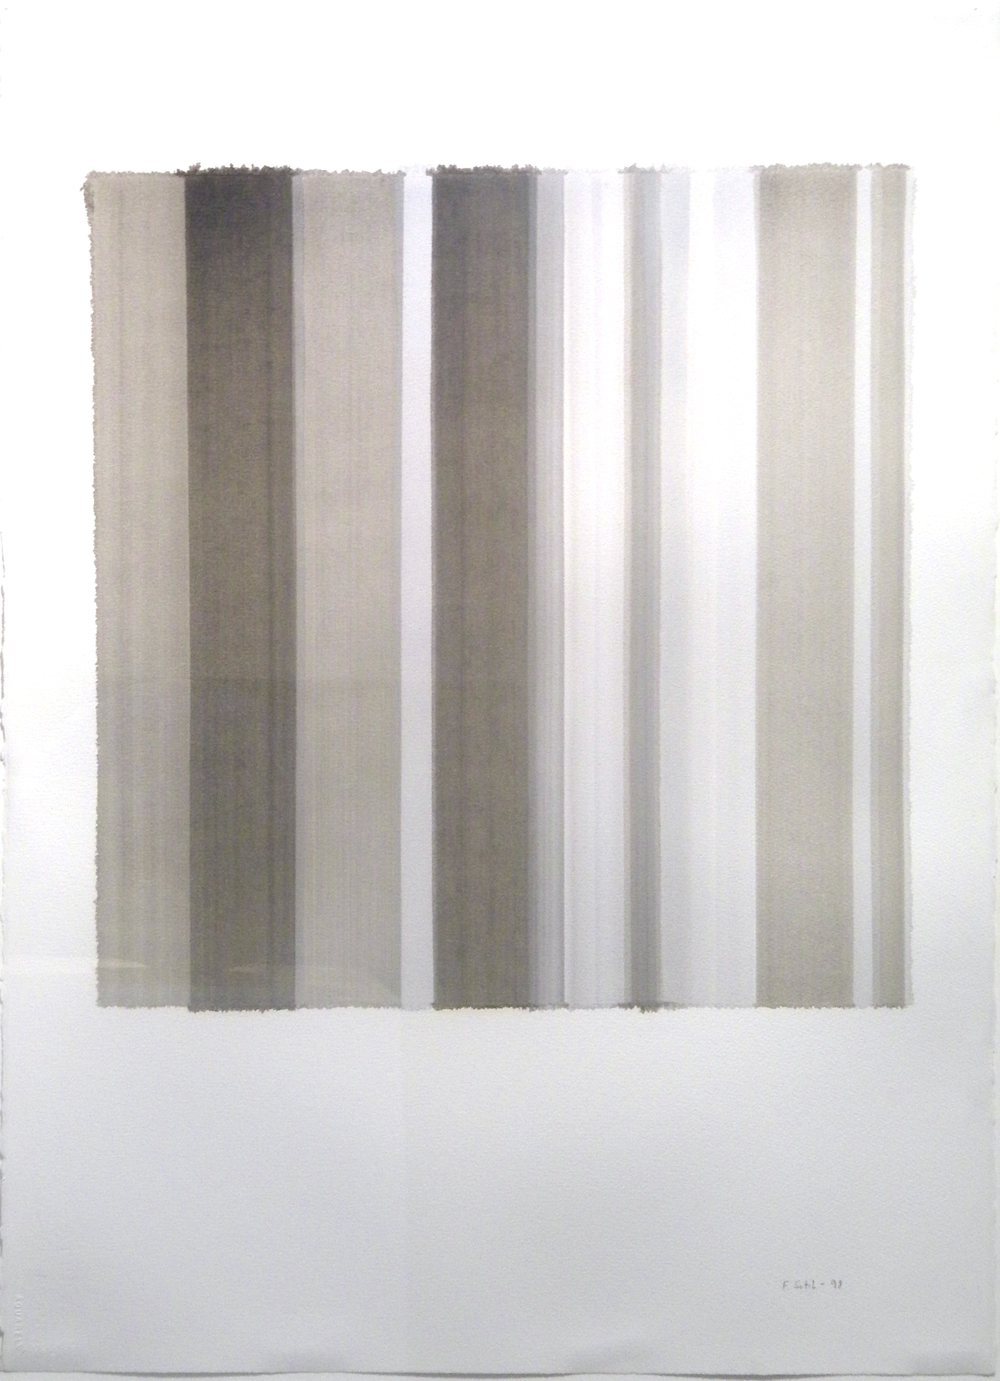 "Francisca Sutil    Untitled - Spaces  , 1998  oil a l'essence on paper  33 3/4"" x 25 7/8"""